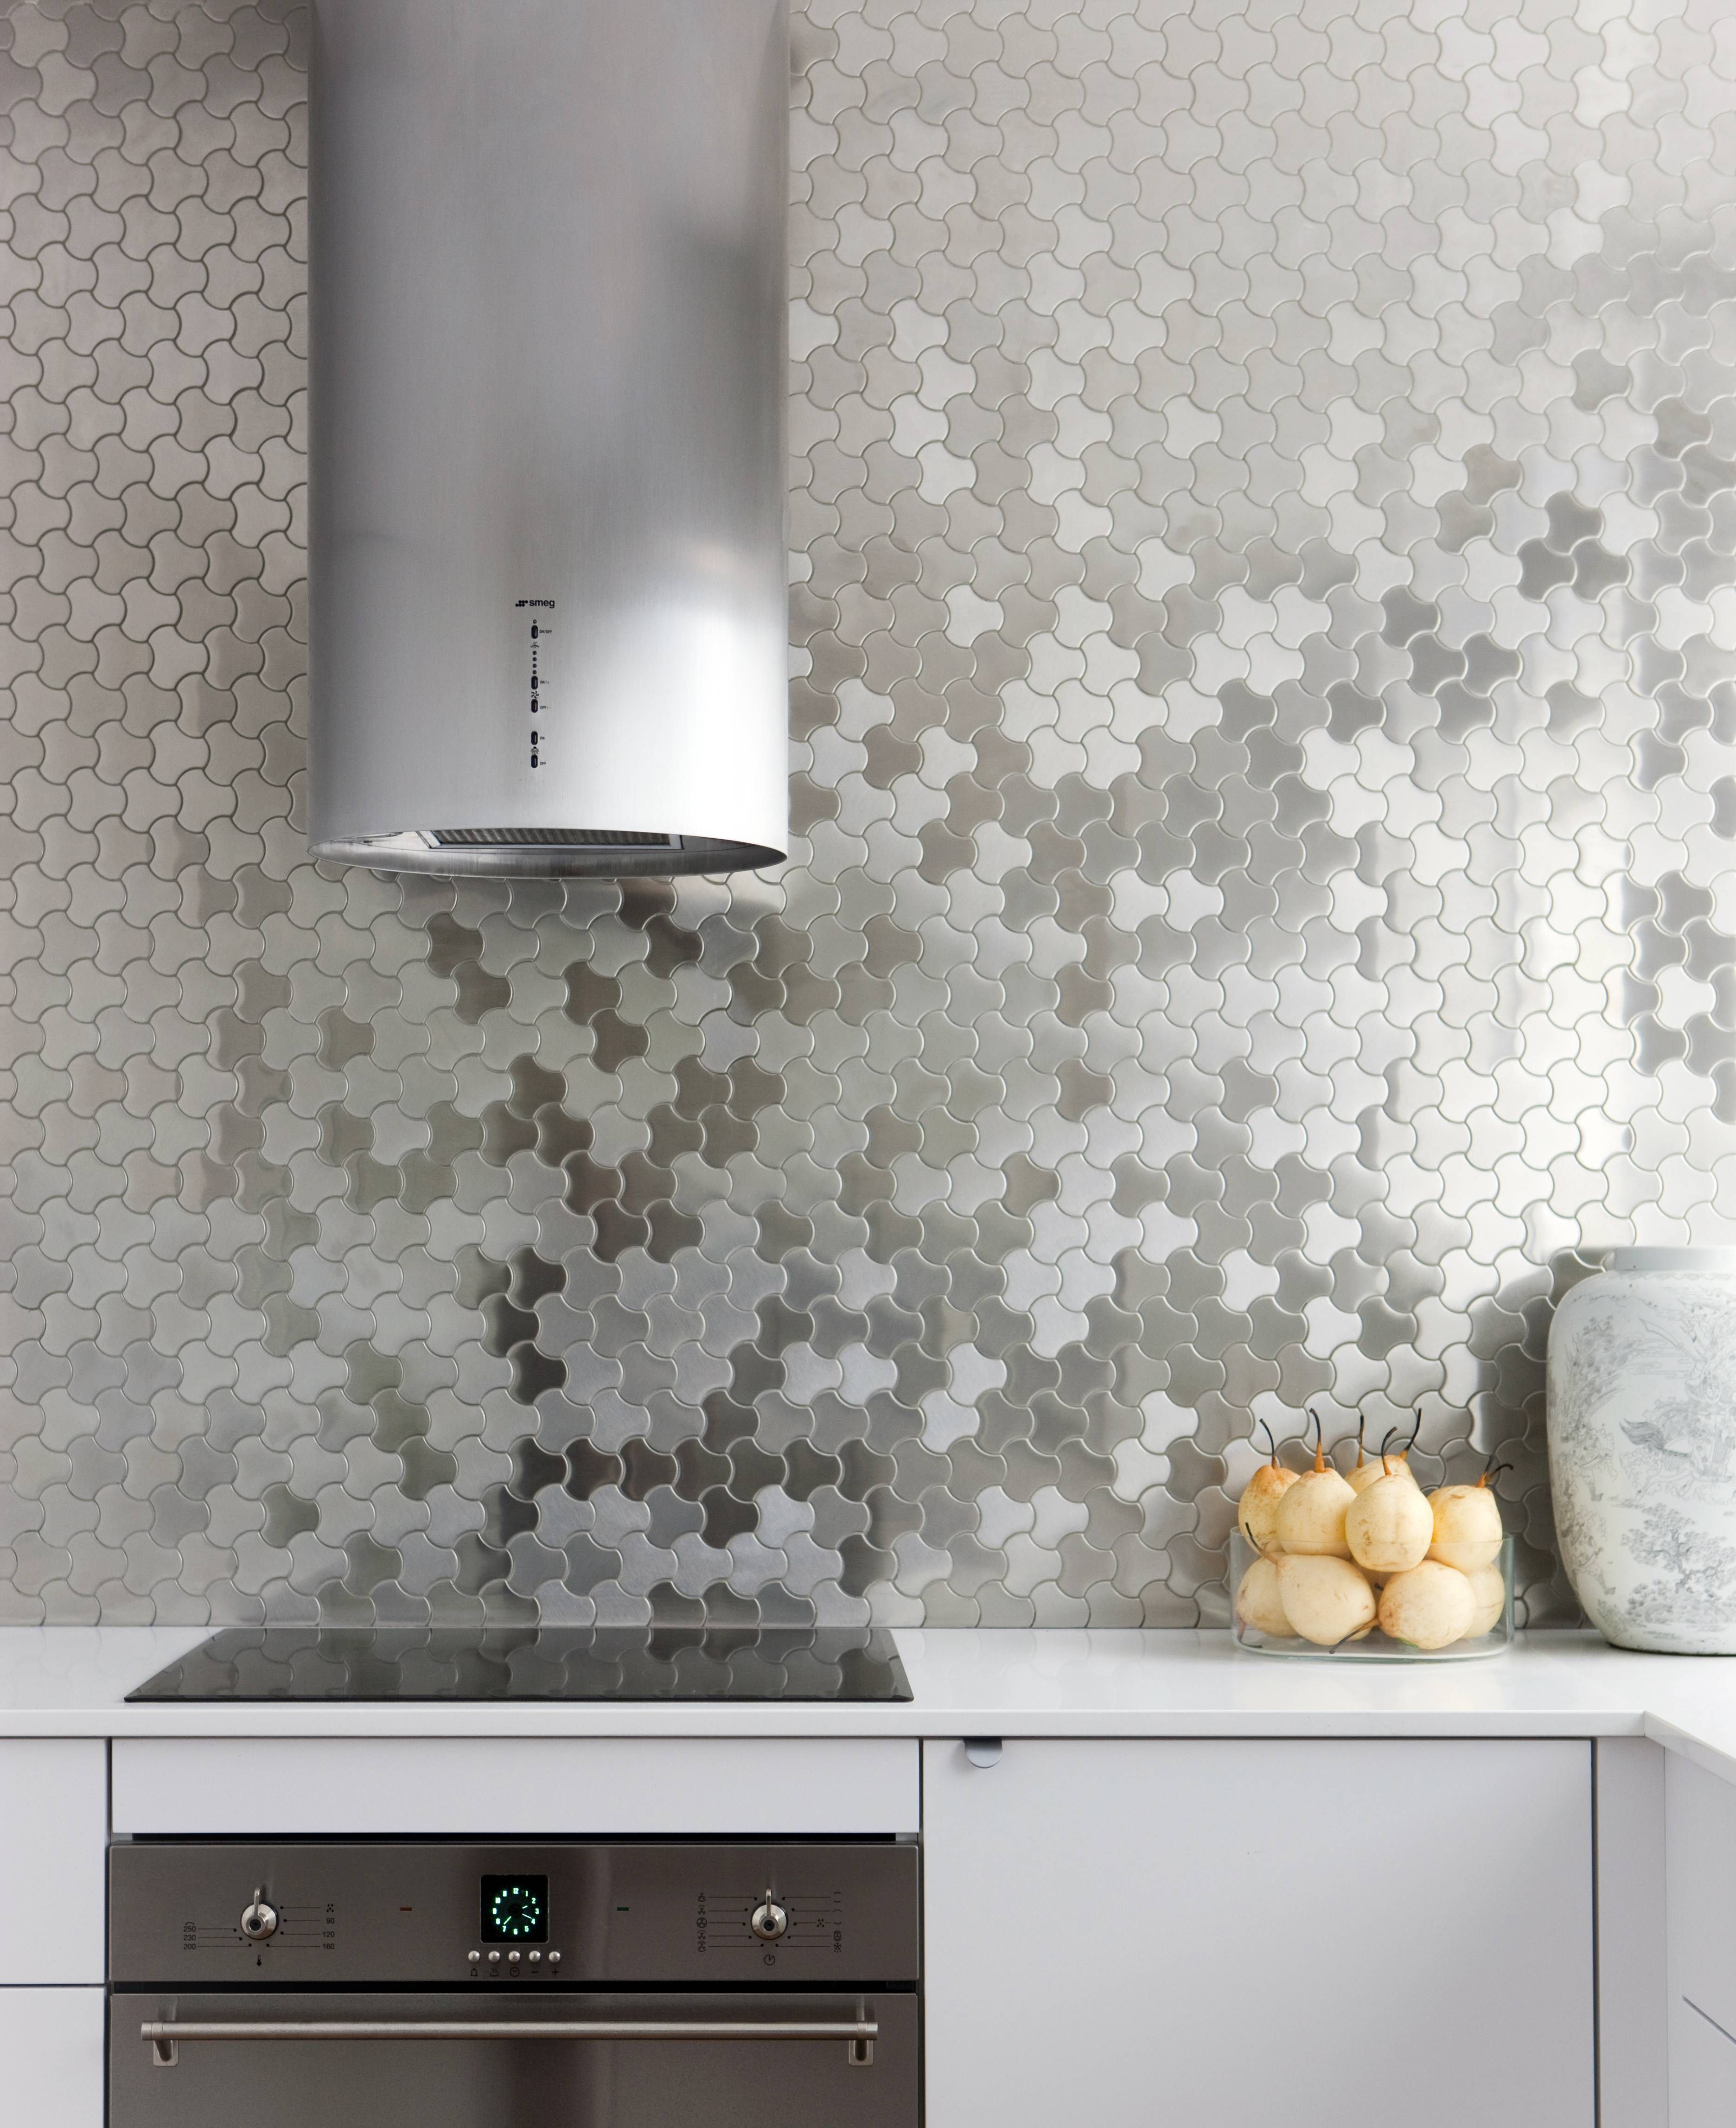 Karim For Alloy Ubiquity Mosaic Tile In Brushed Stainless Steel